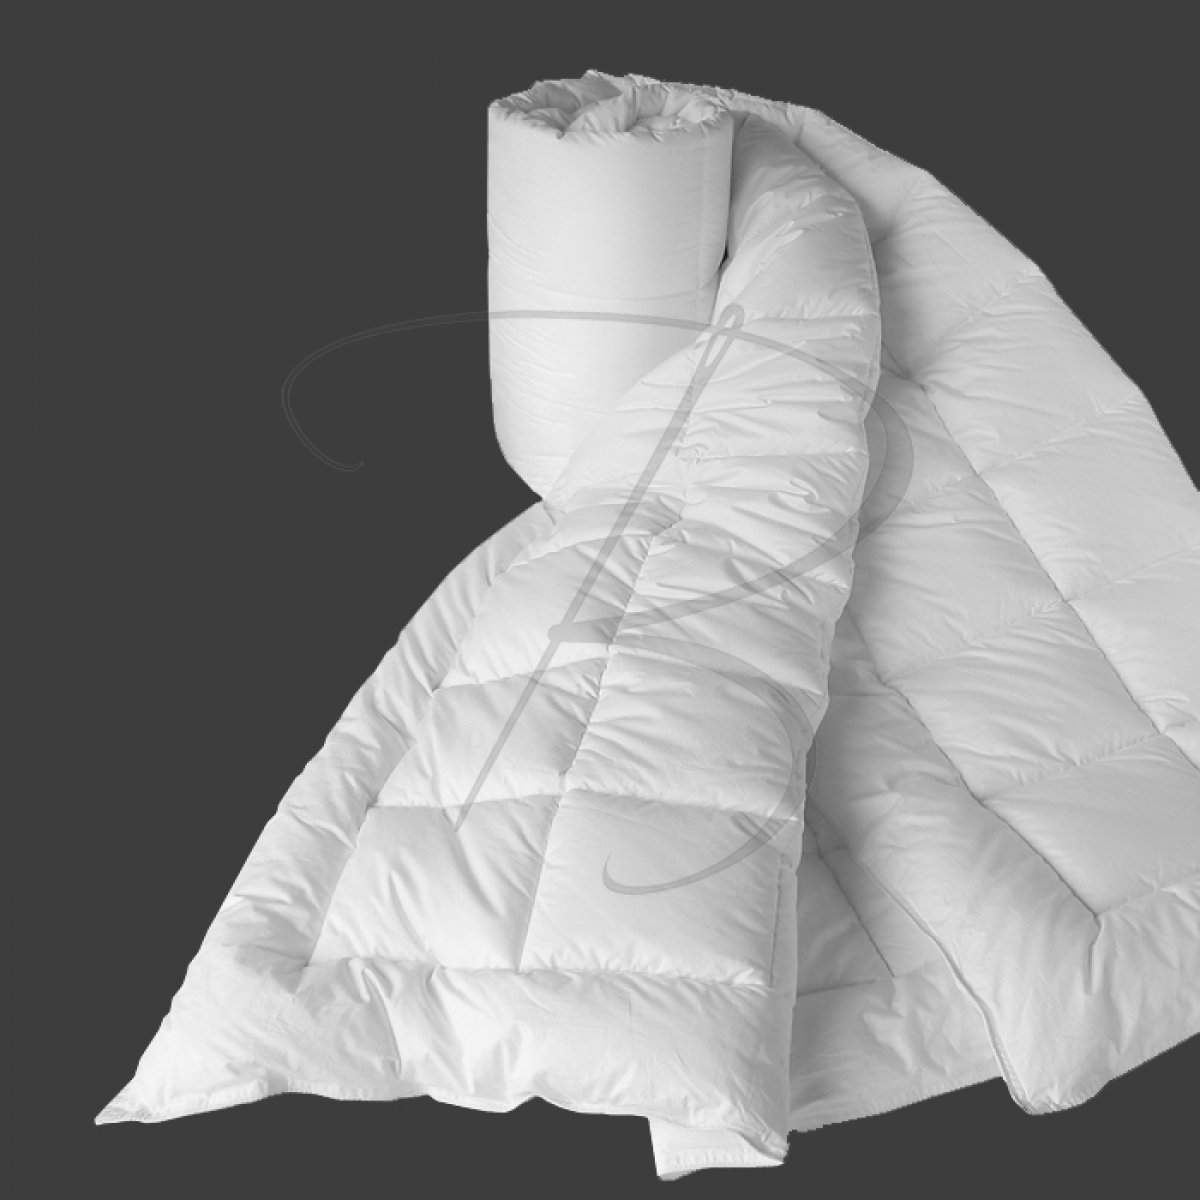 Synthetic comforter TIGNES - 400g/m² - 260 x 240